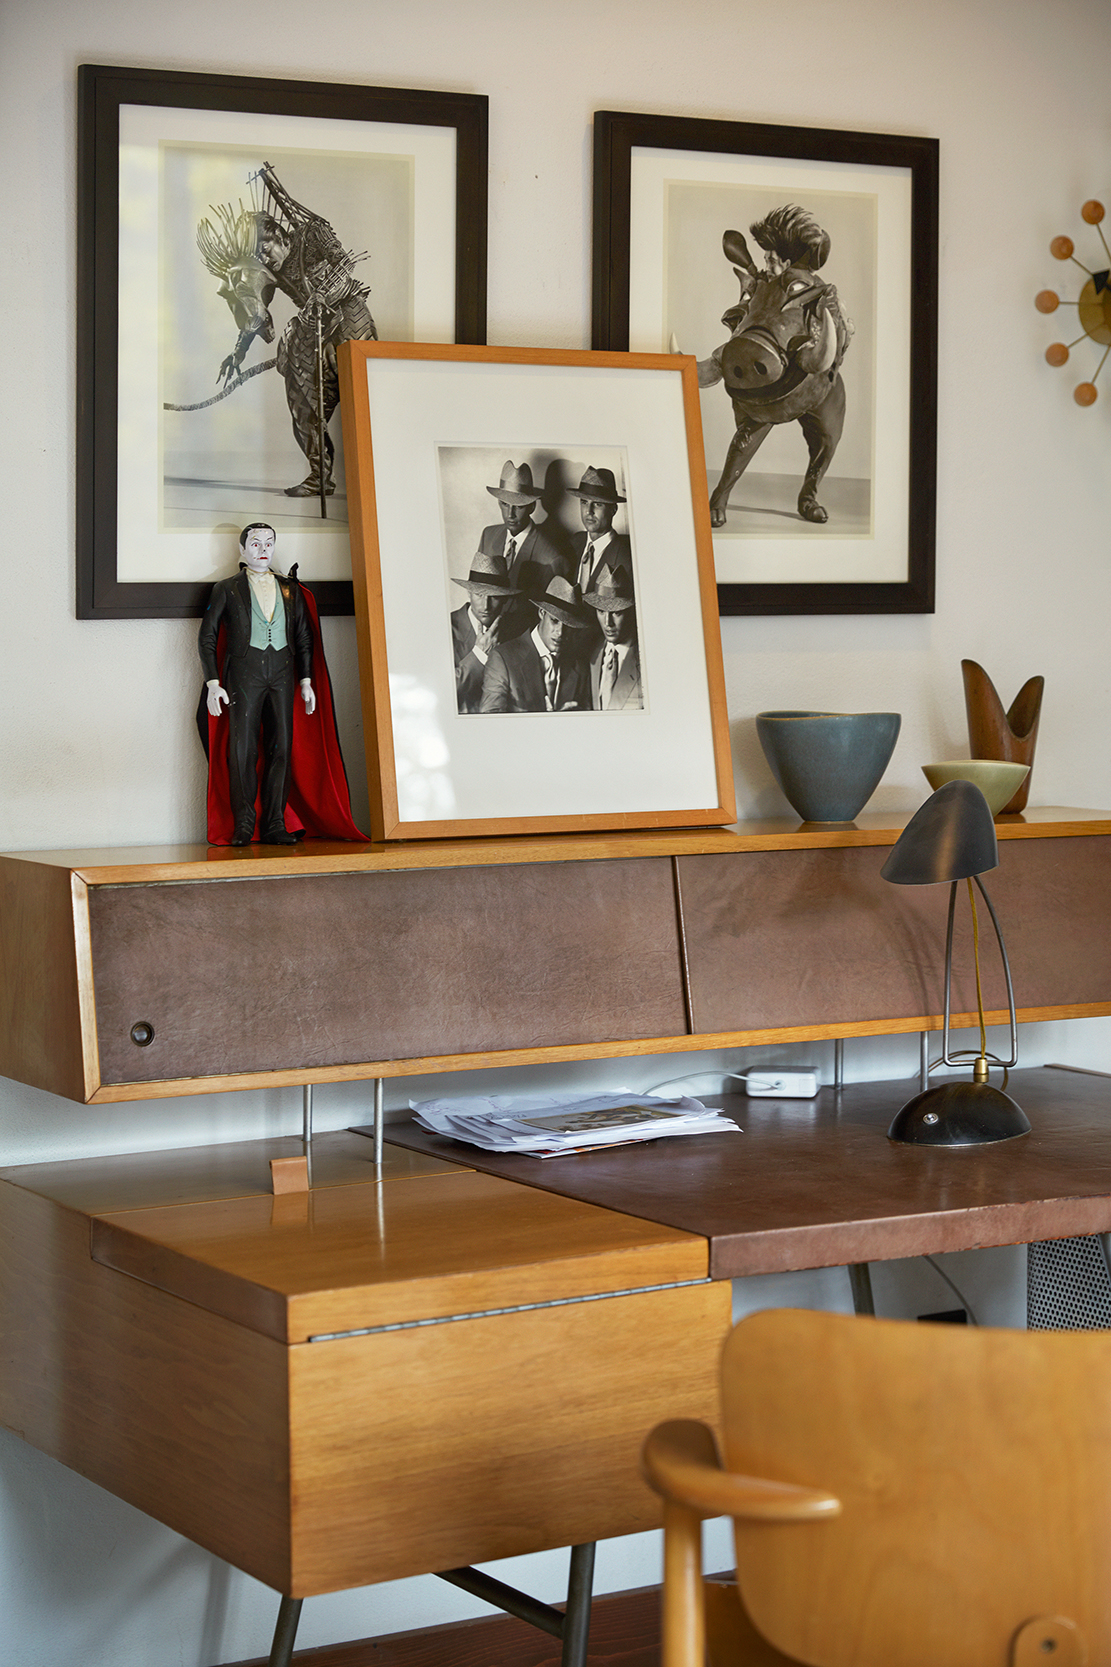 Their photography with desk by George Nelson for Herman Miller. Pottery by Gunnar Nylund.